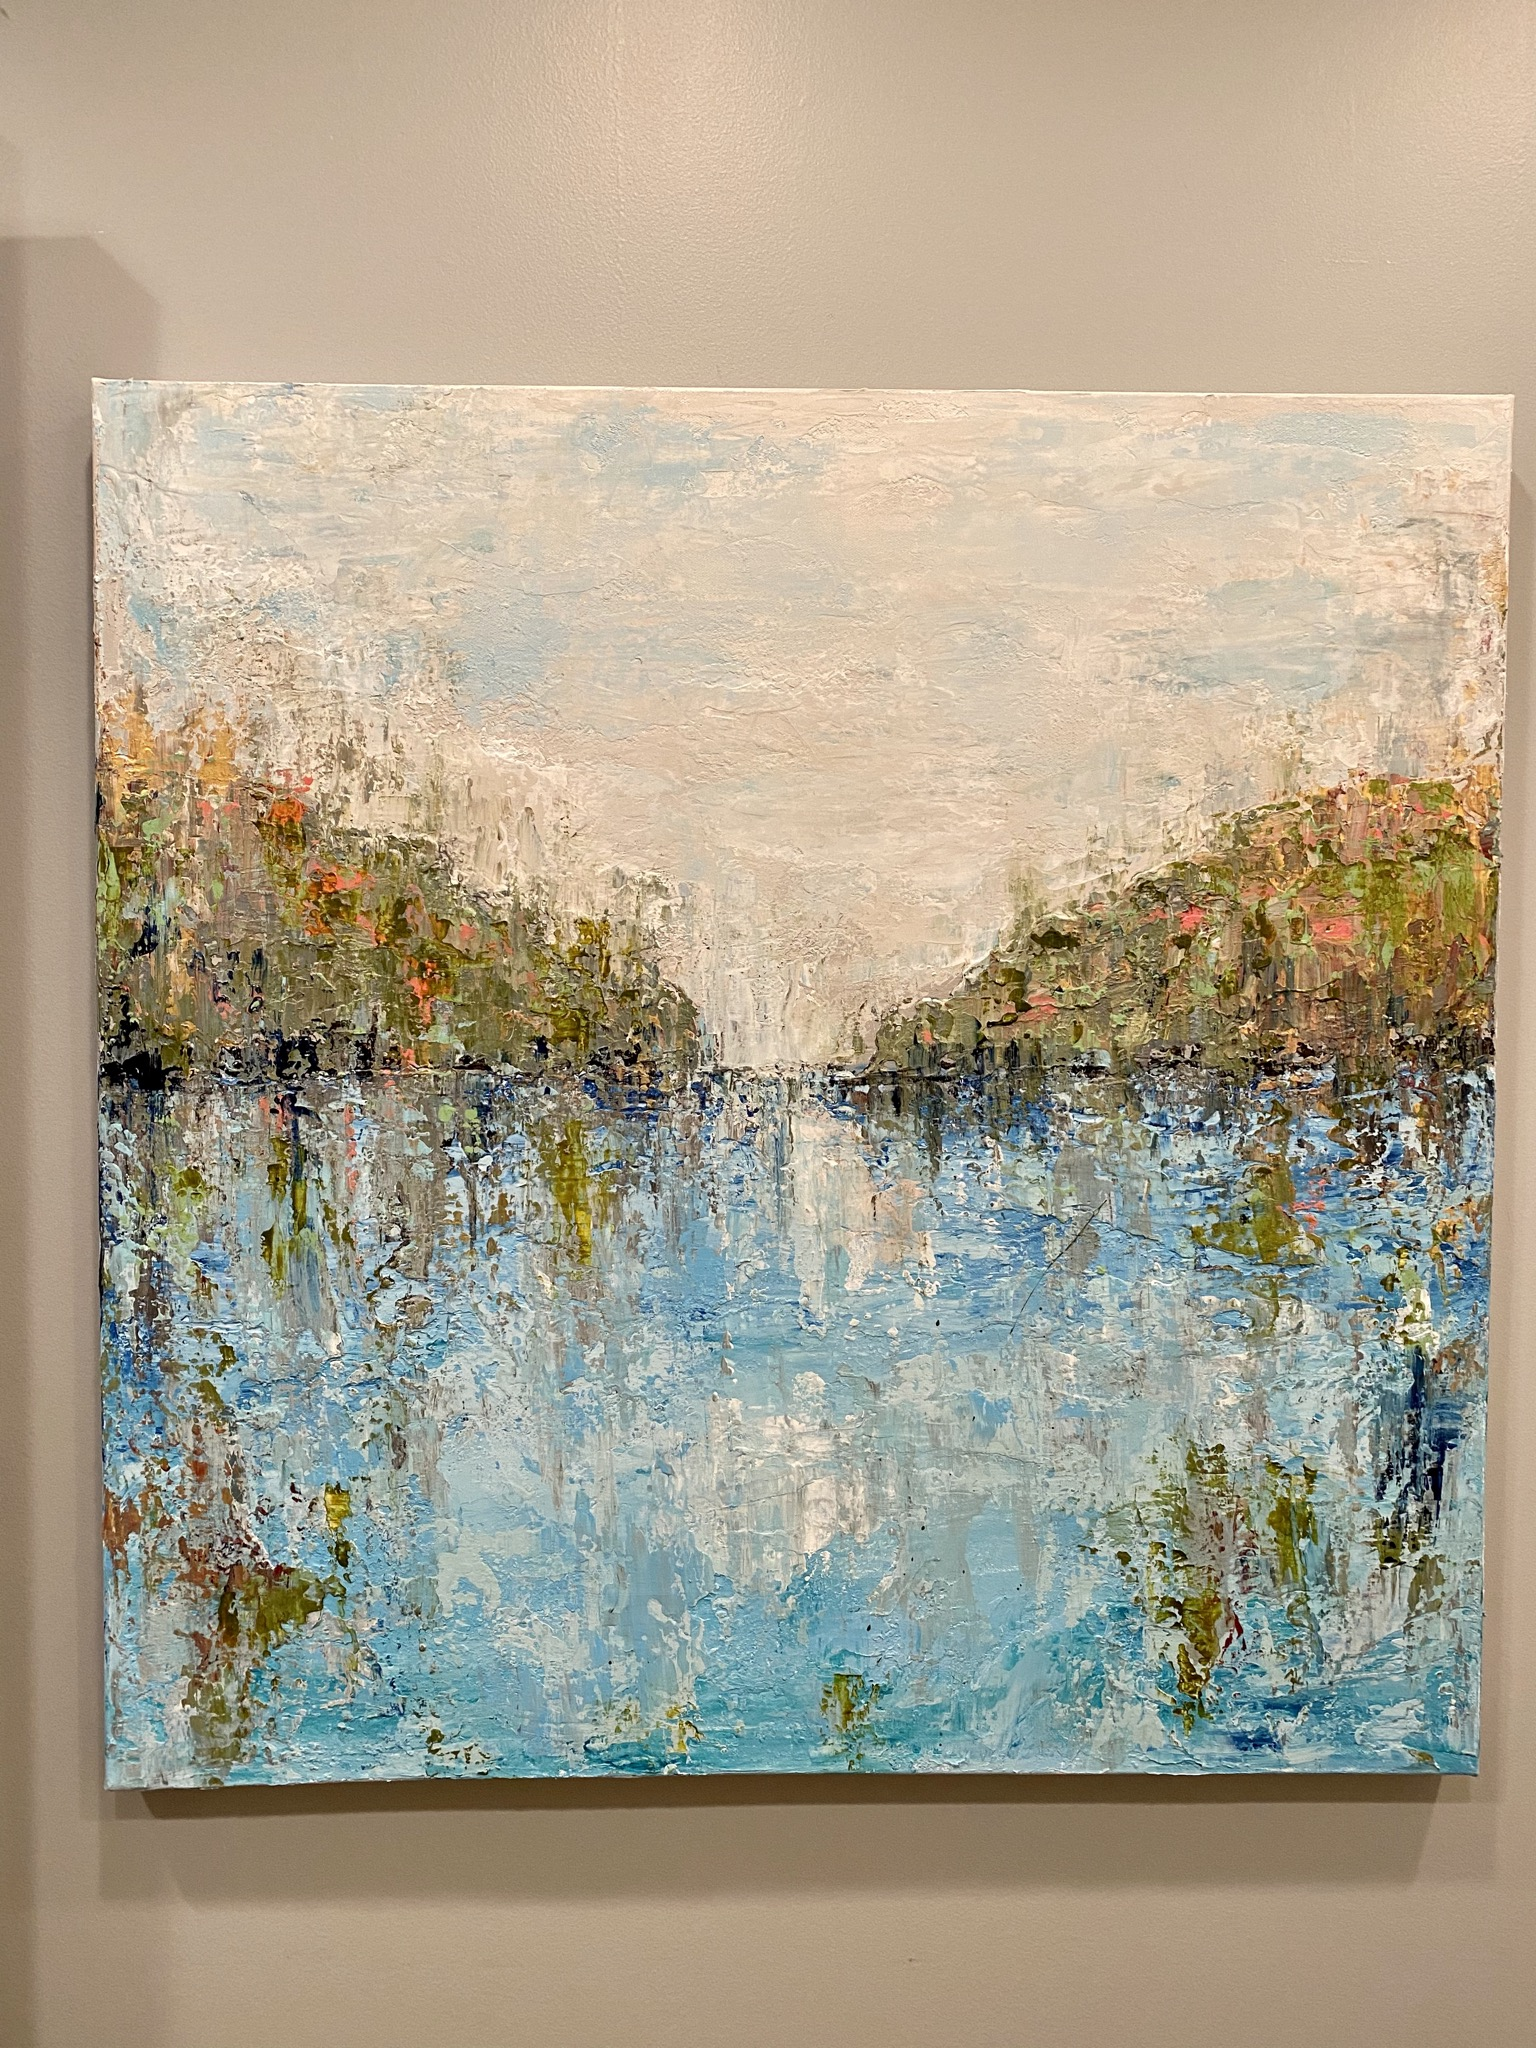 New Day - 1 in a series- heavy Impasto using palette knives and brush, papers, acrylics